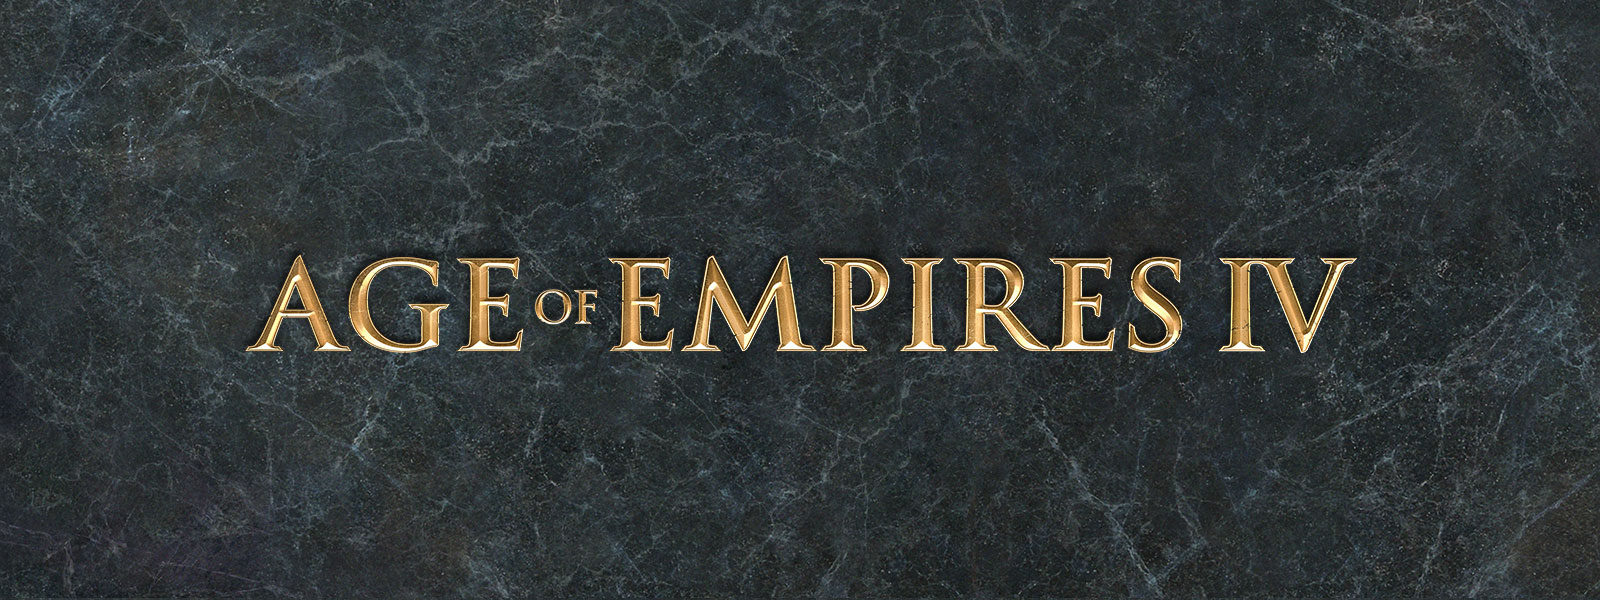 Age of Empires IV 標誌在灰色板岩背景上